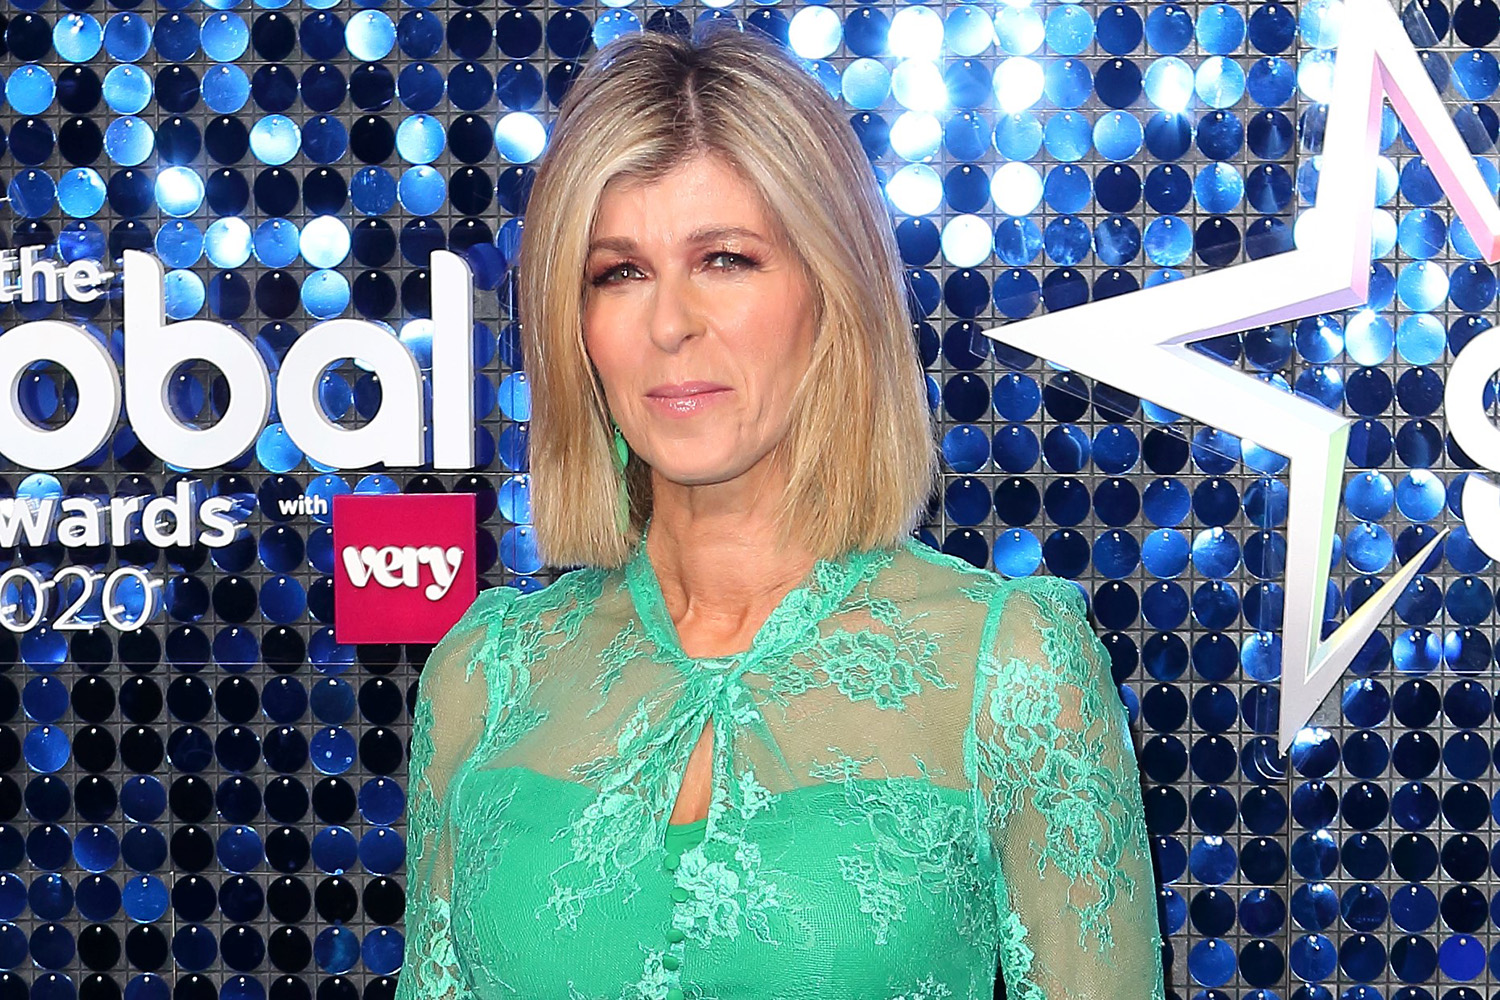 Kate Garraway breaks social media silence to send sweet message to Eamonn Holmes